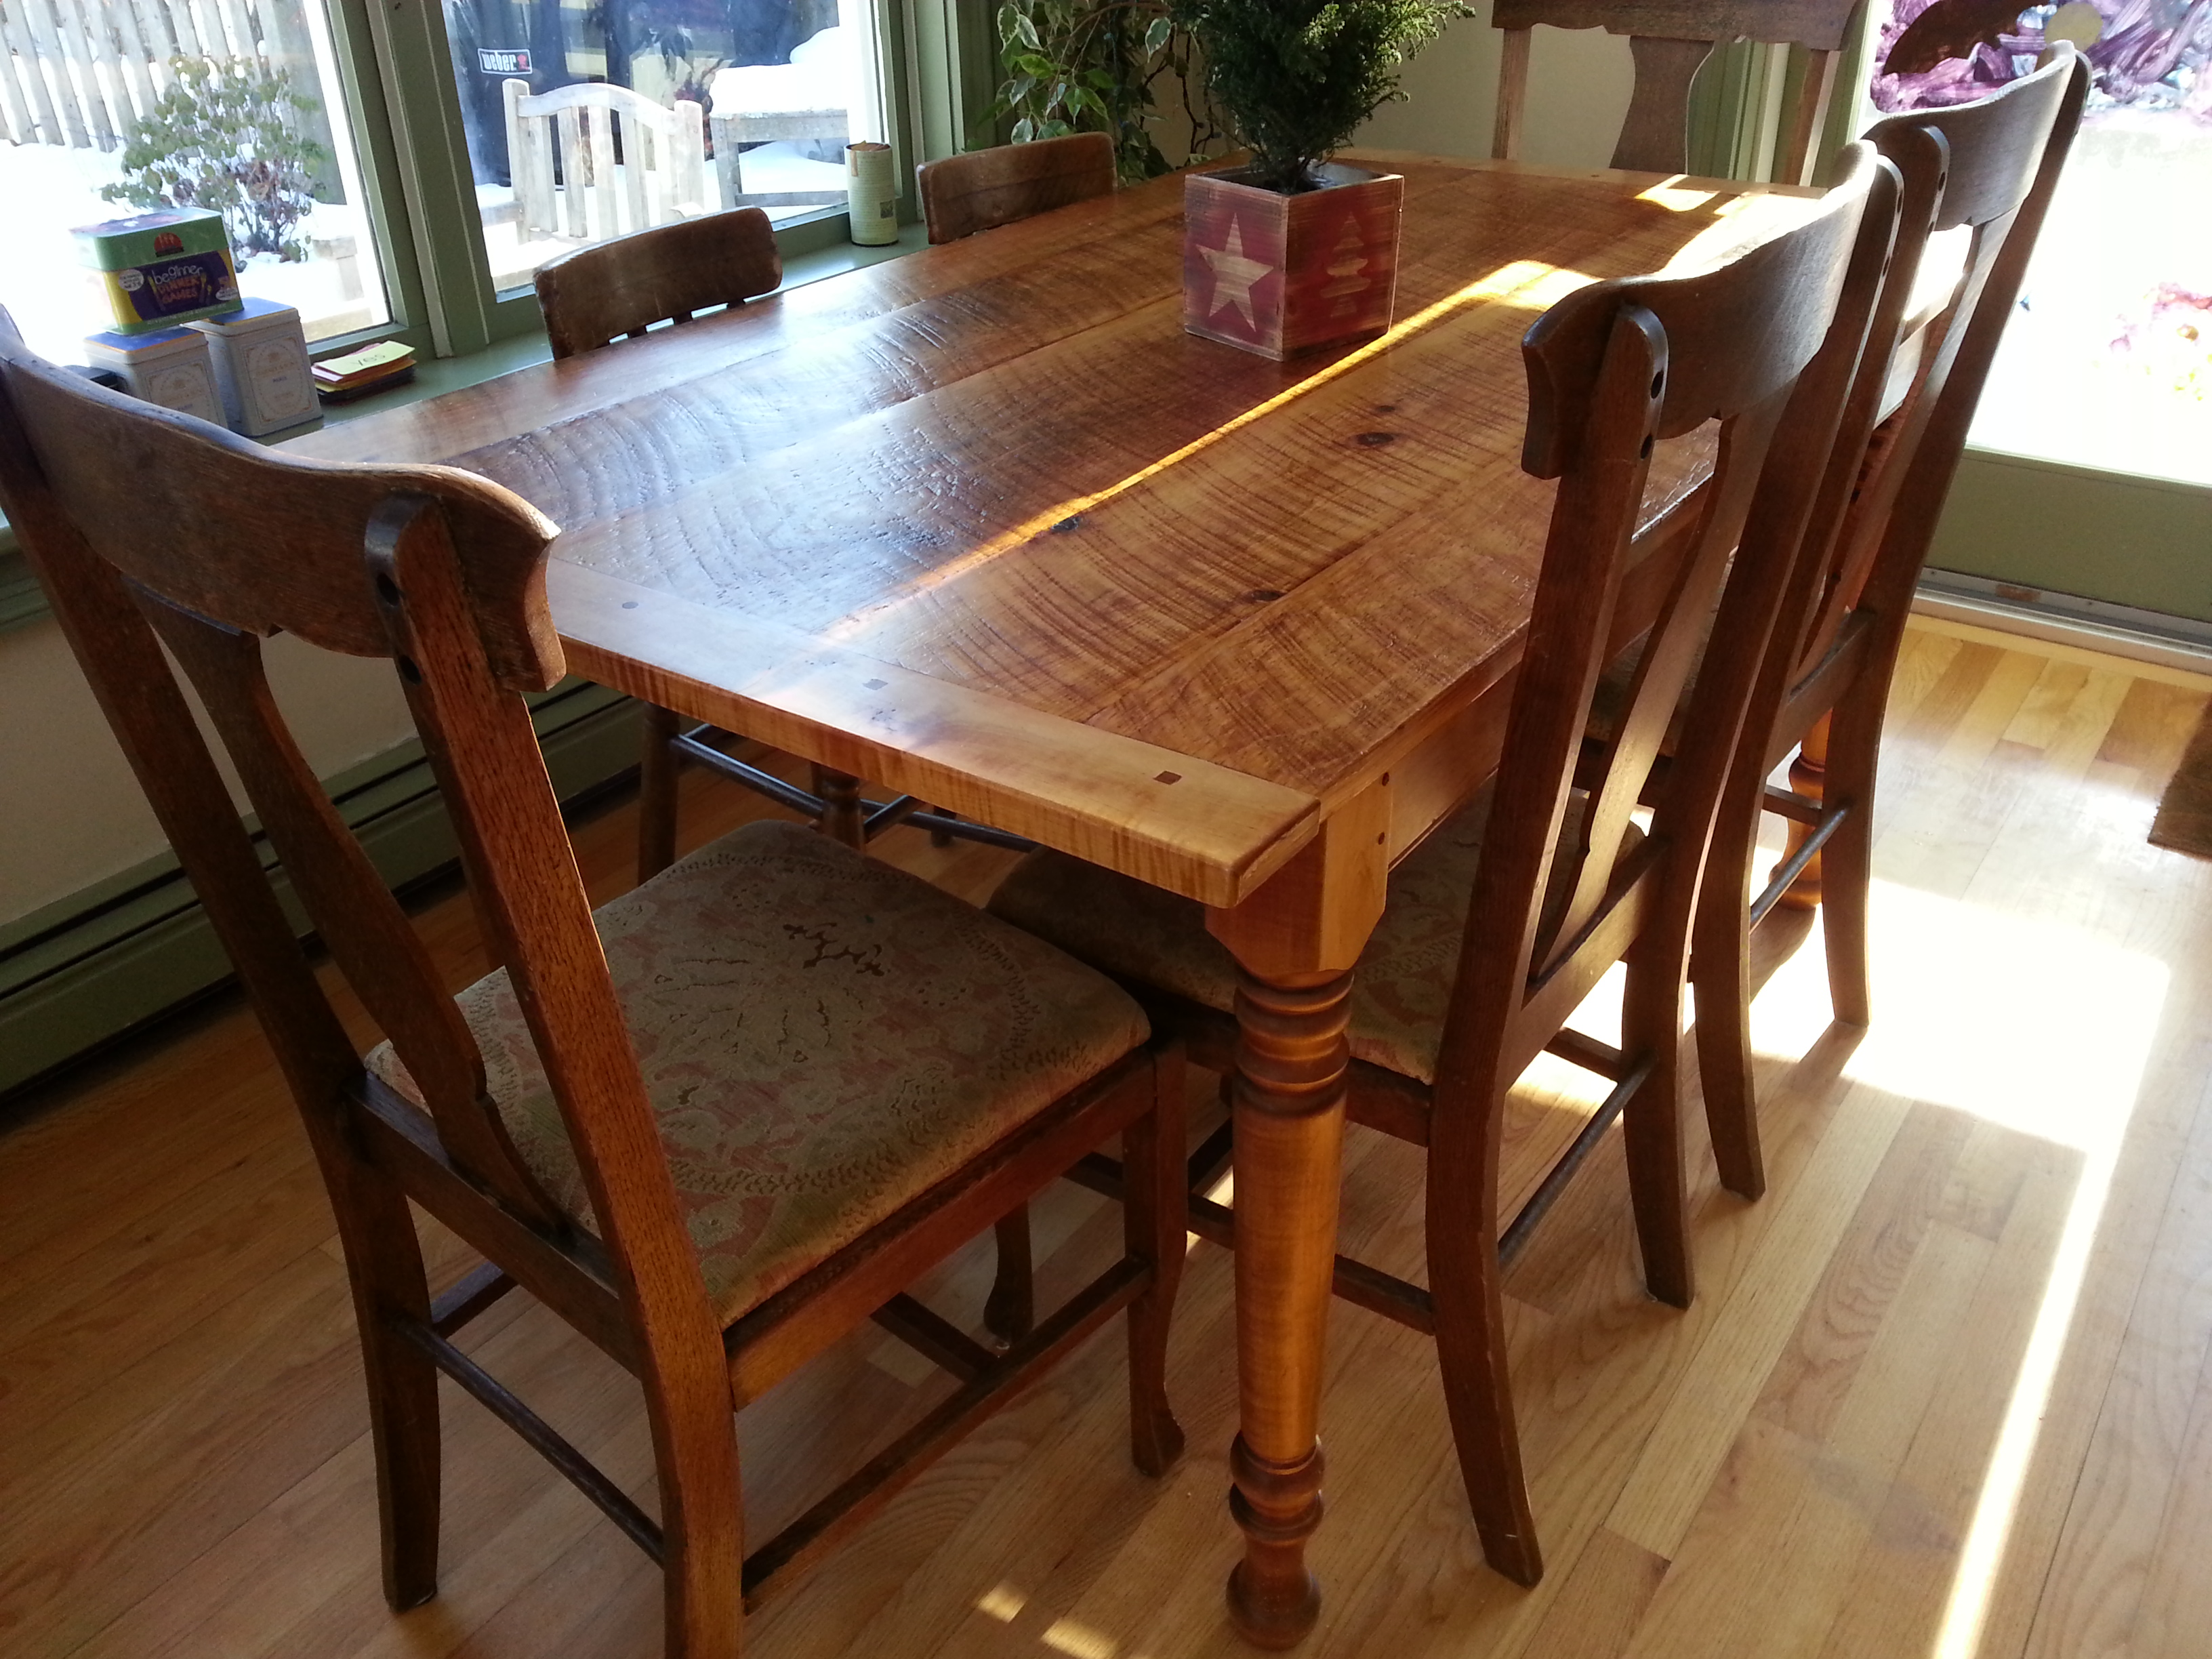 Rustic Pine farm table # 3B